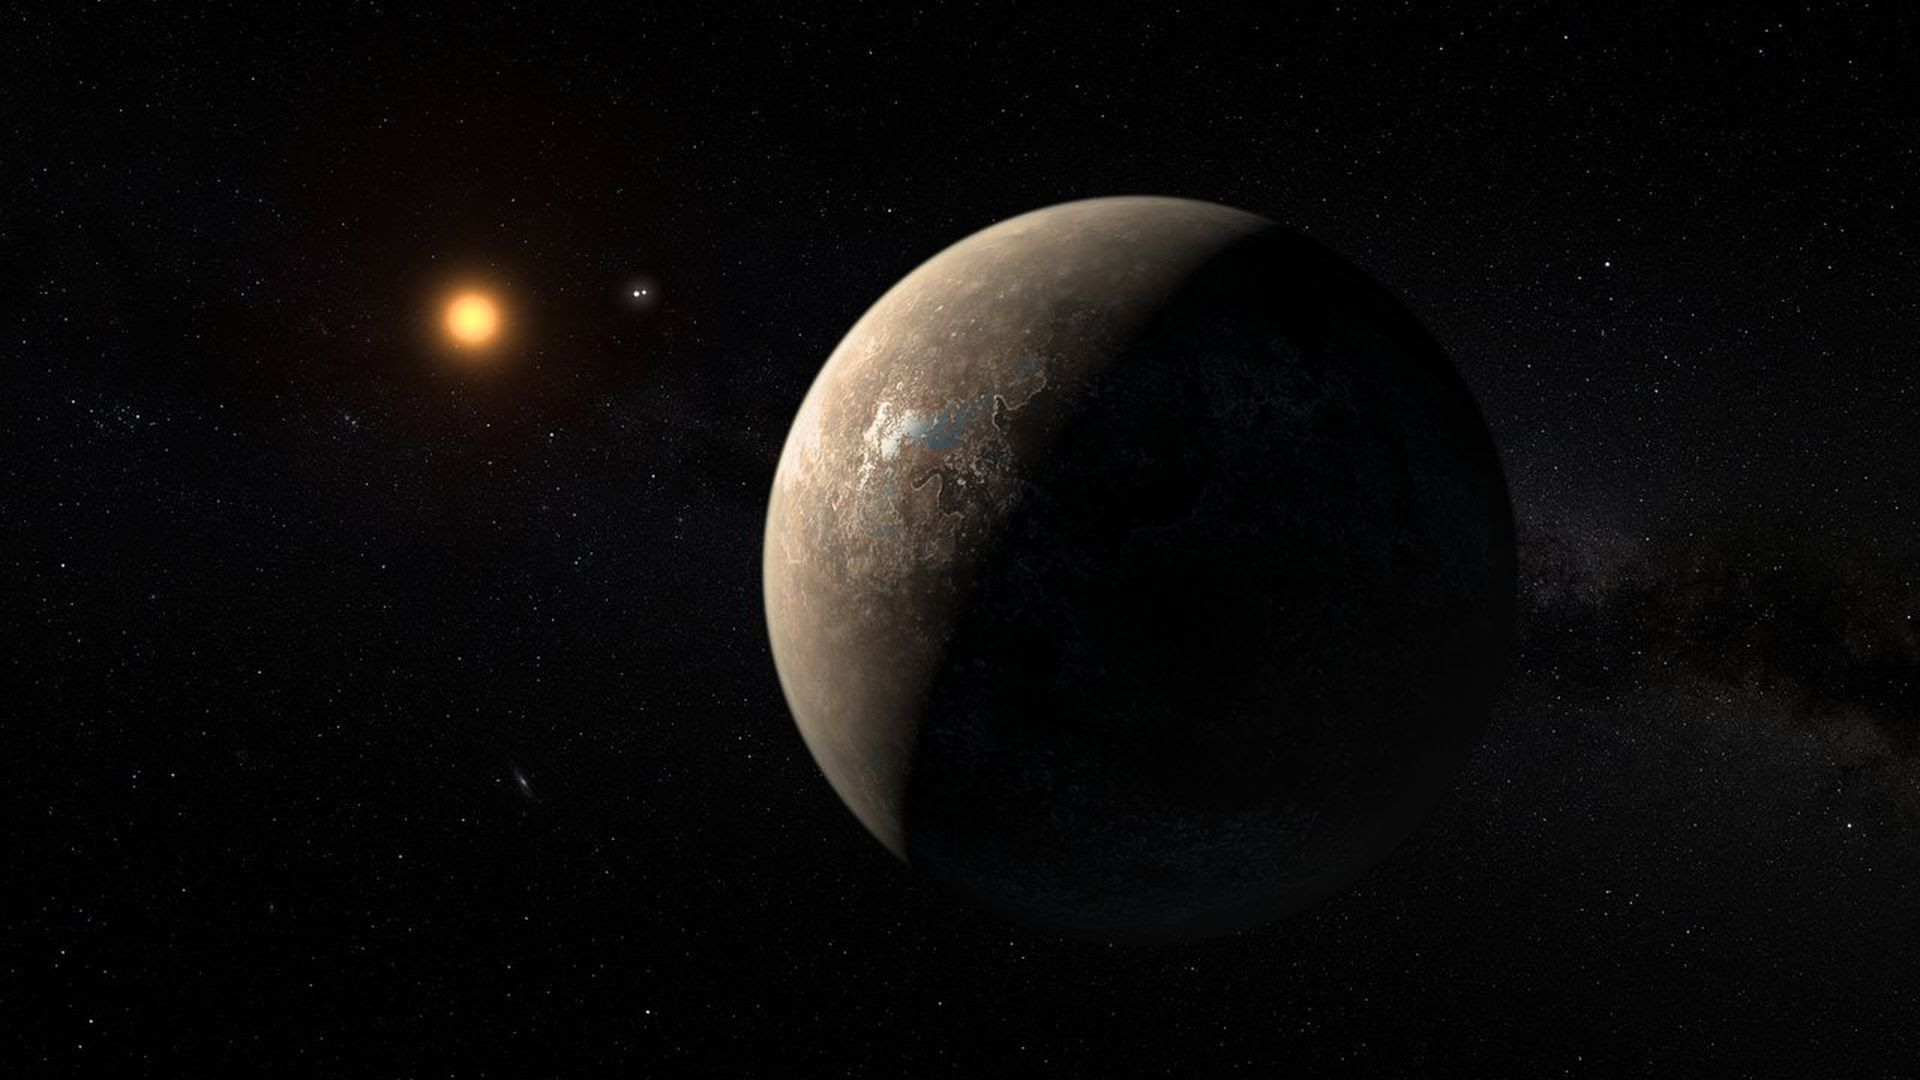 Artist's impression of Proxima-b orbiting its star. Photo: ESO/M. Kornmesser